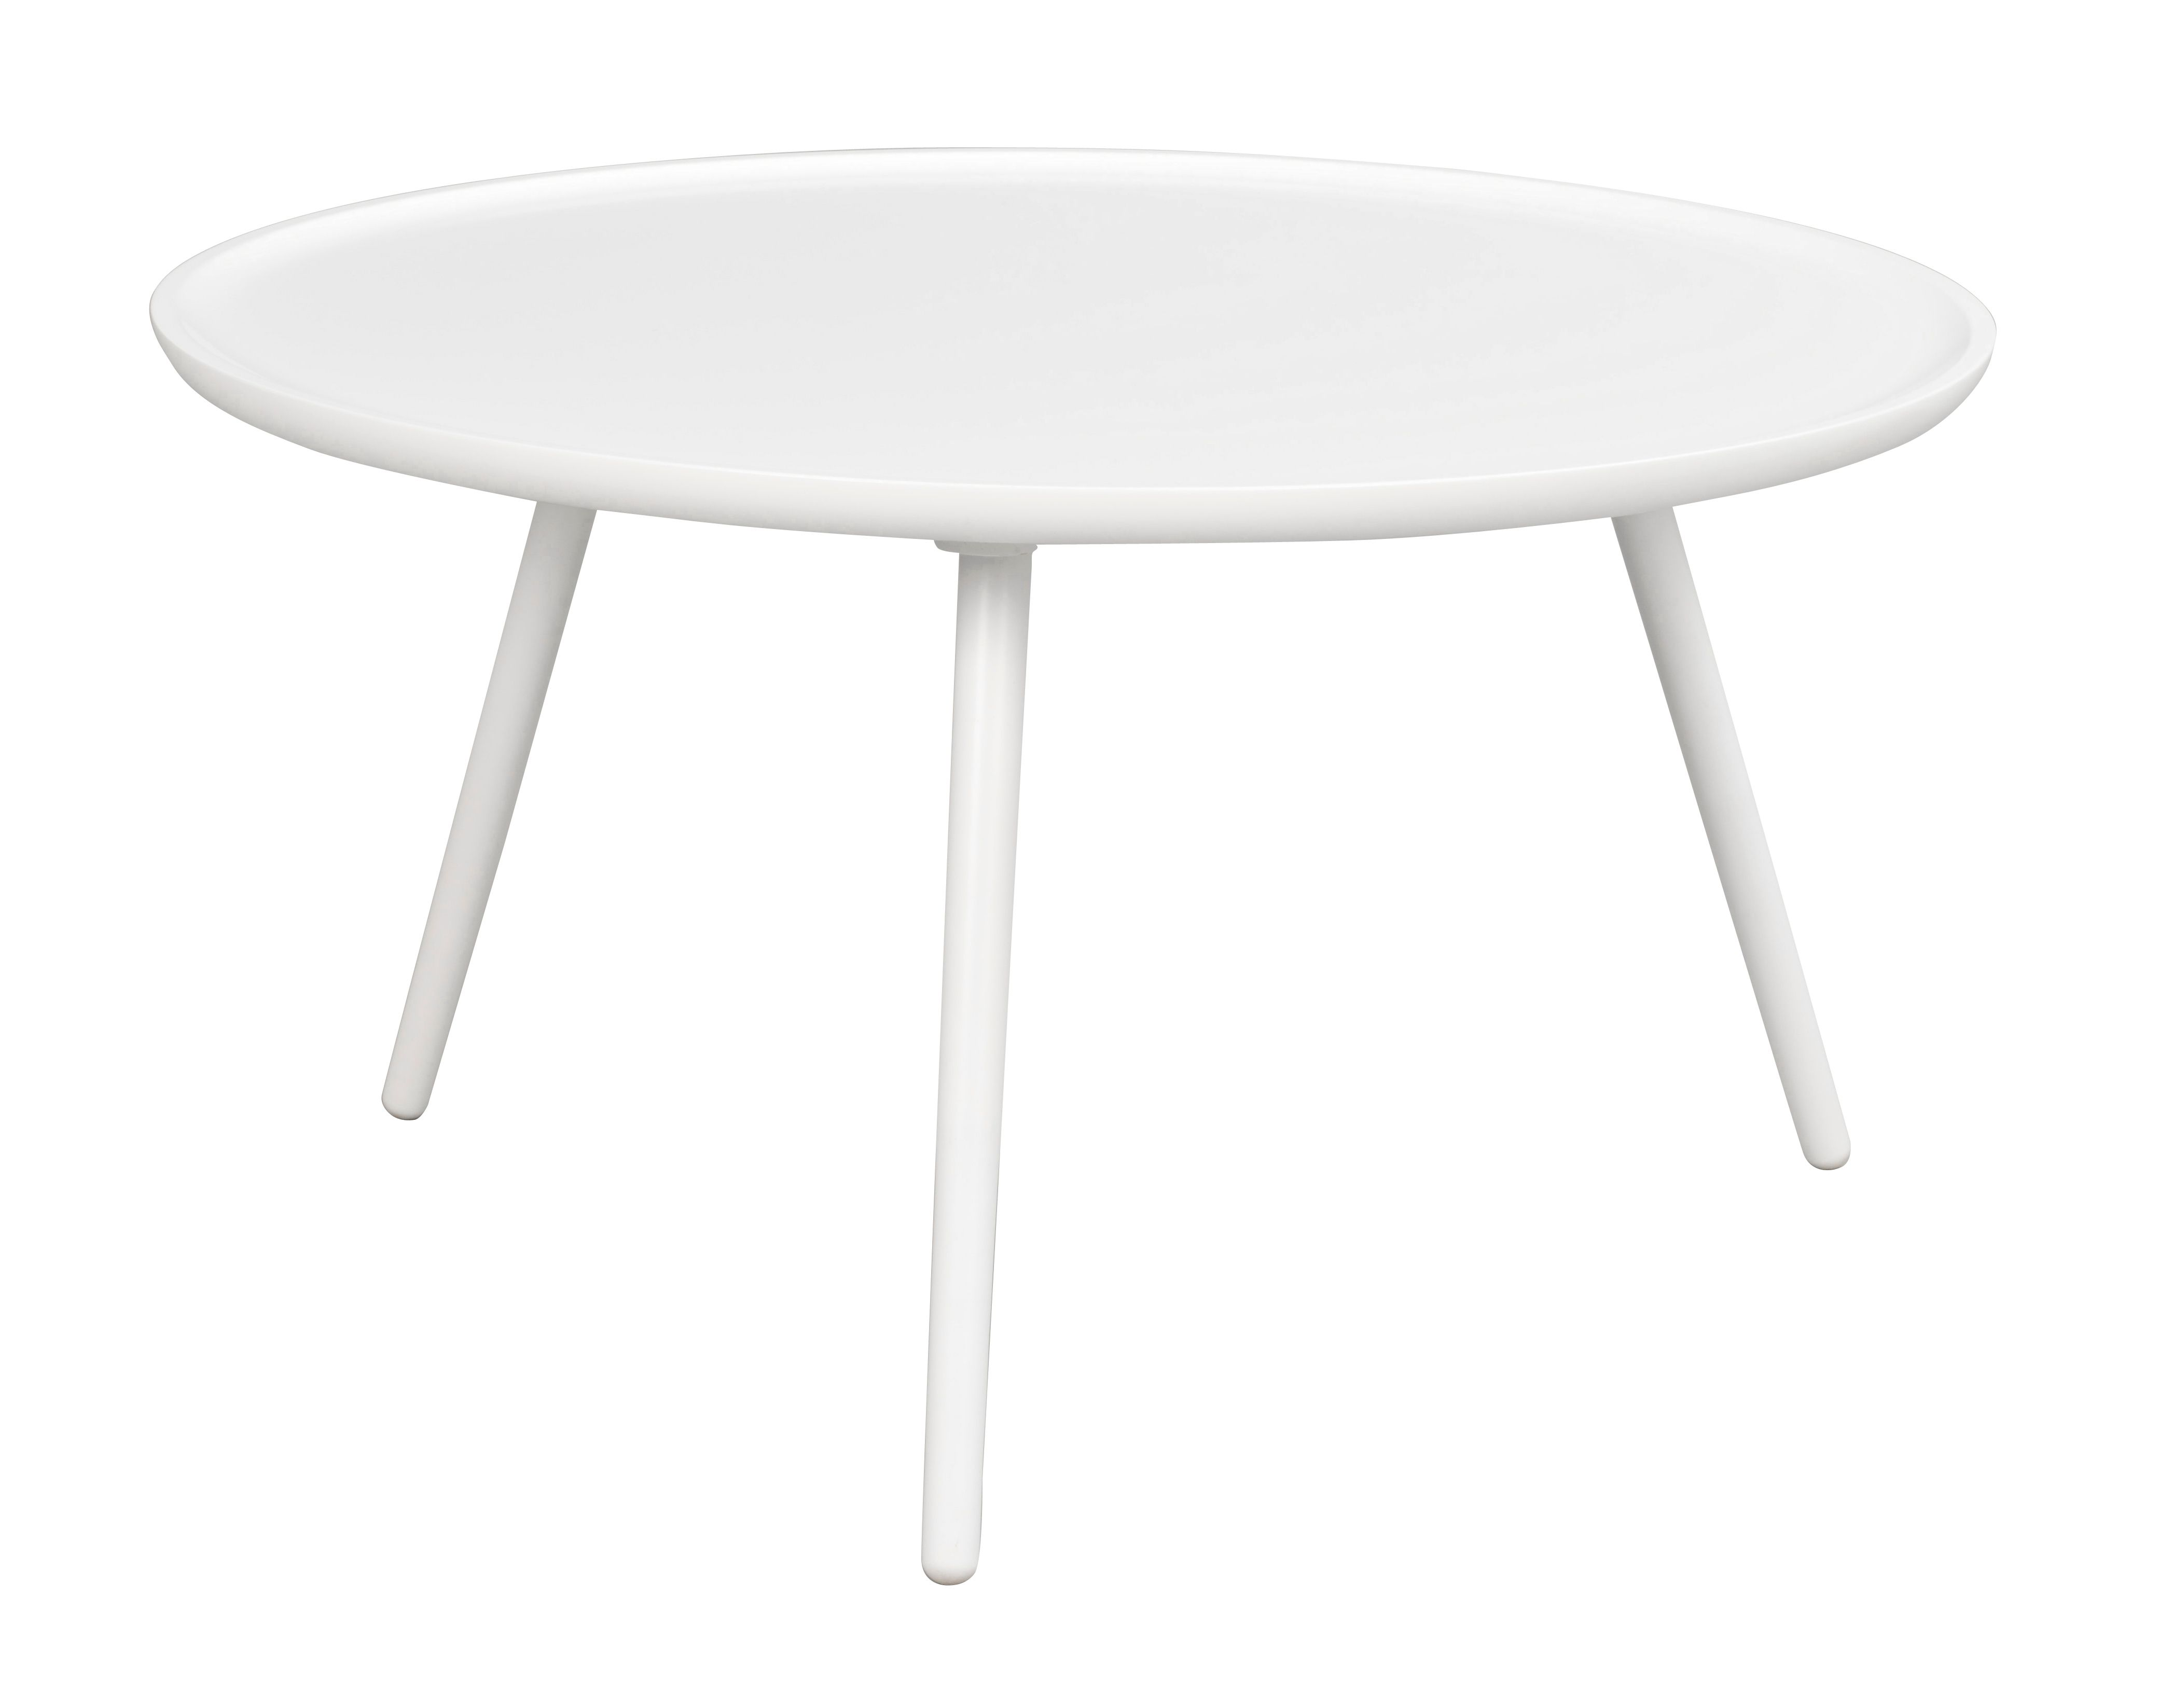 DAISY Large Coffee Table in White Lacquered Wood